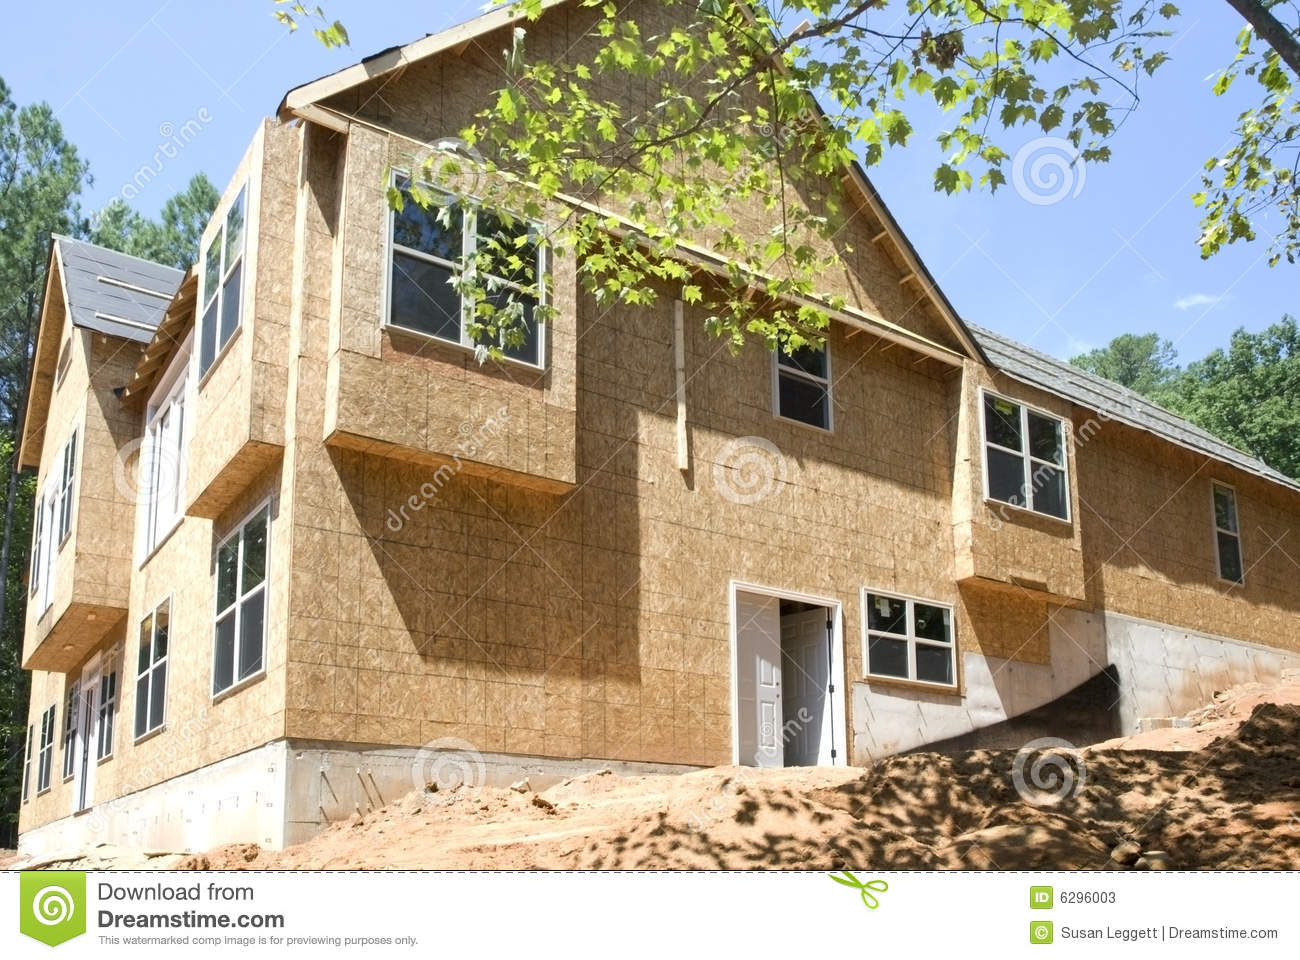 New construction side view stock photos image 6296003 for Building house with side views